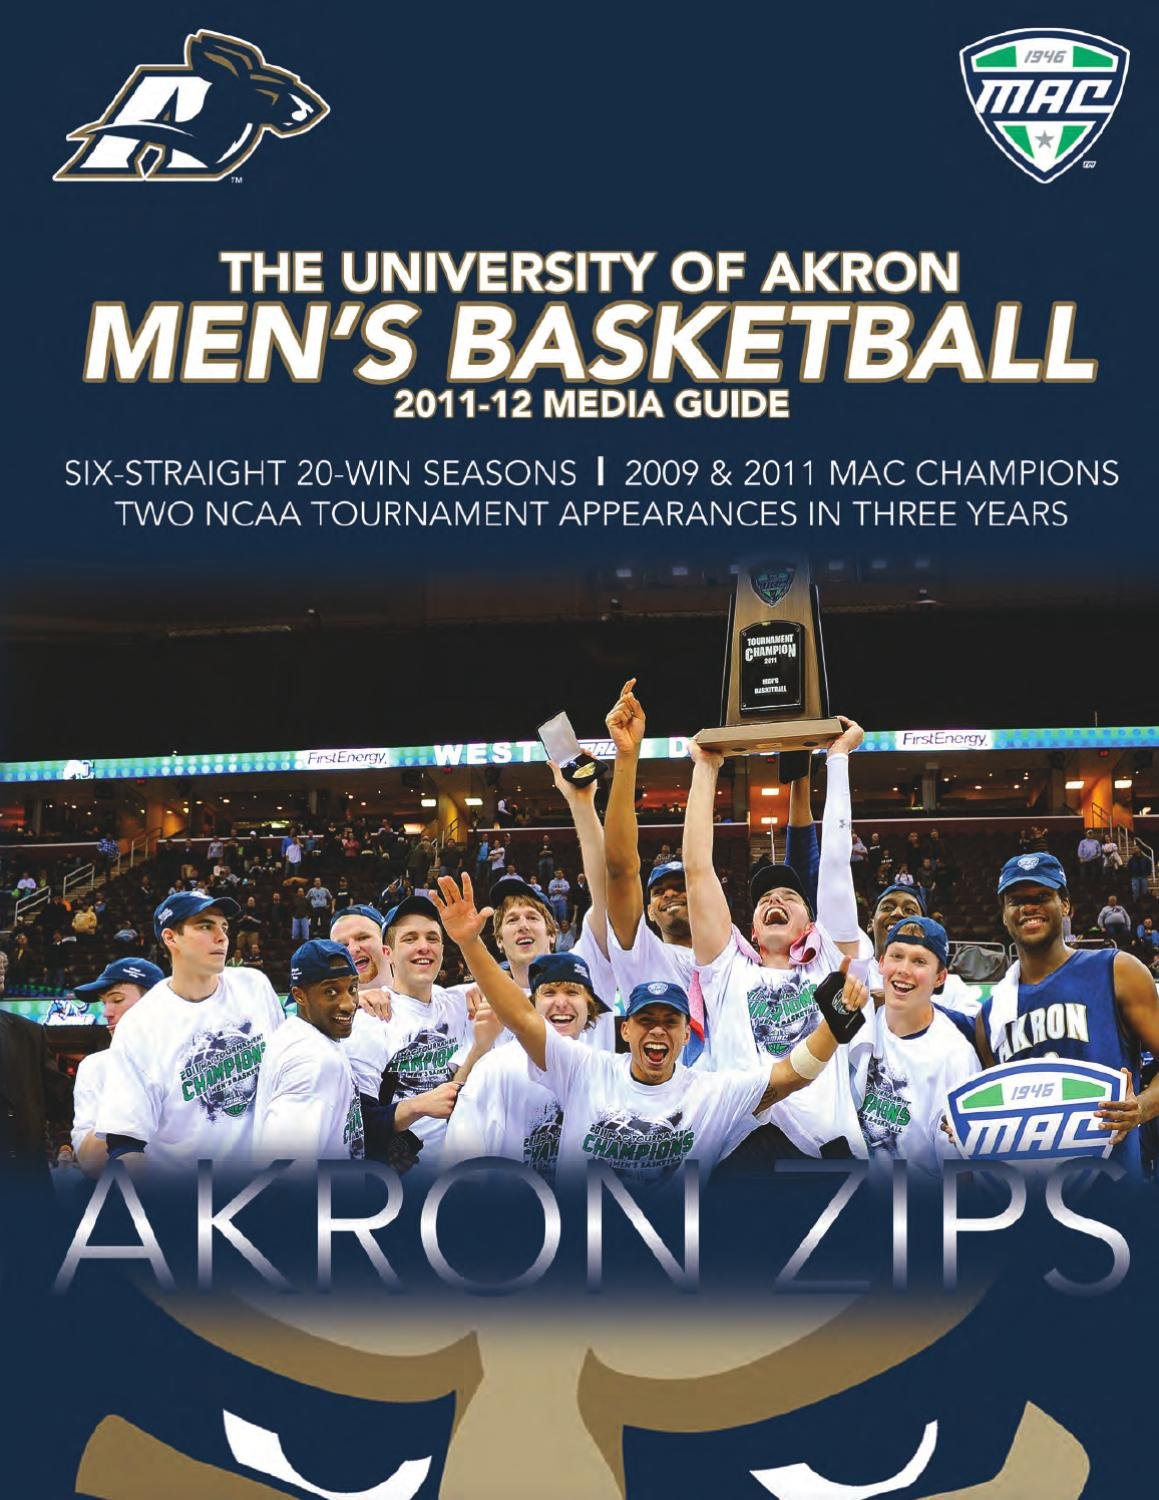 d373a1352 The University of Akron 2011-12 Men s Basketball Media Guide by Akron Zips  - issuu